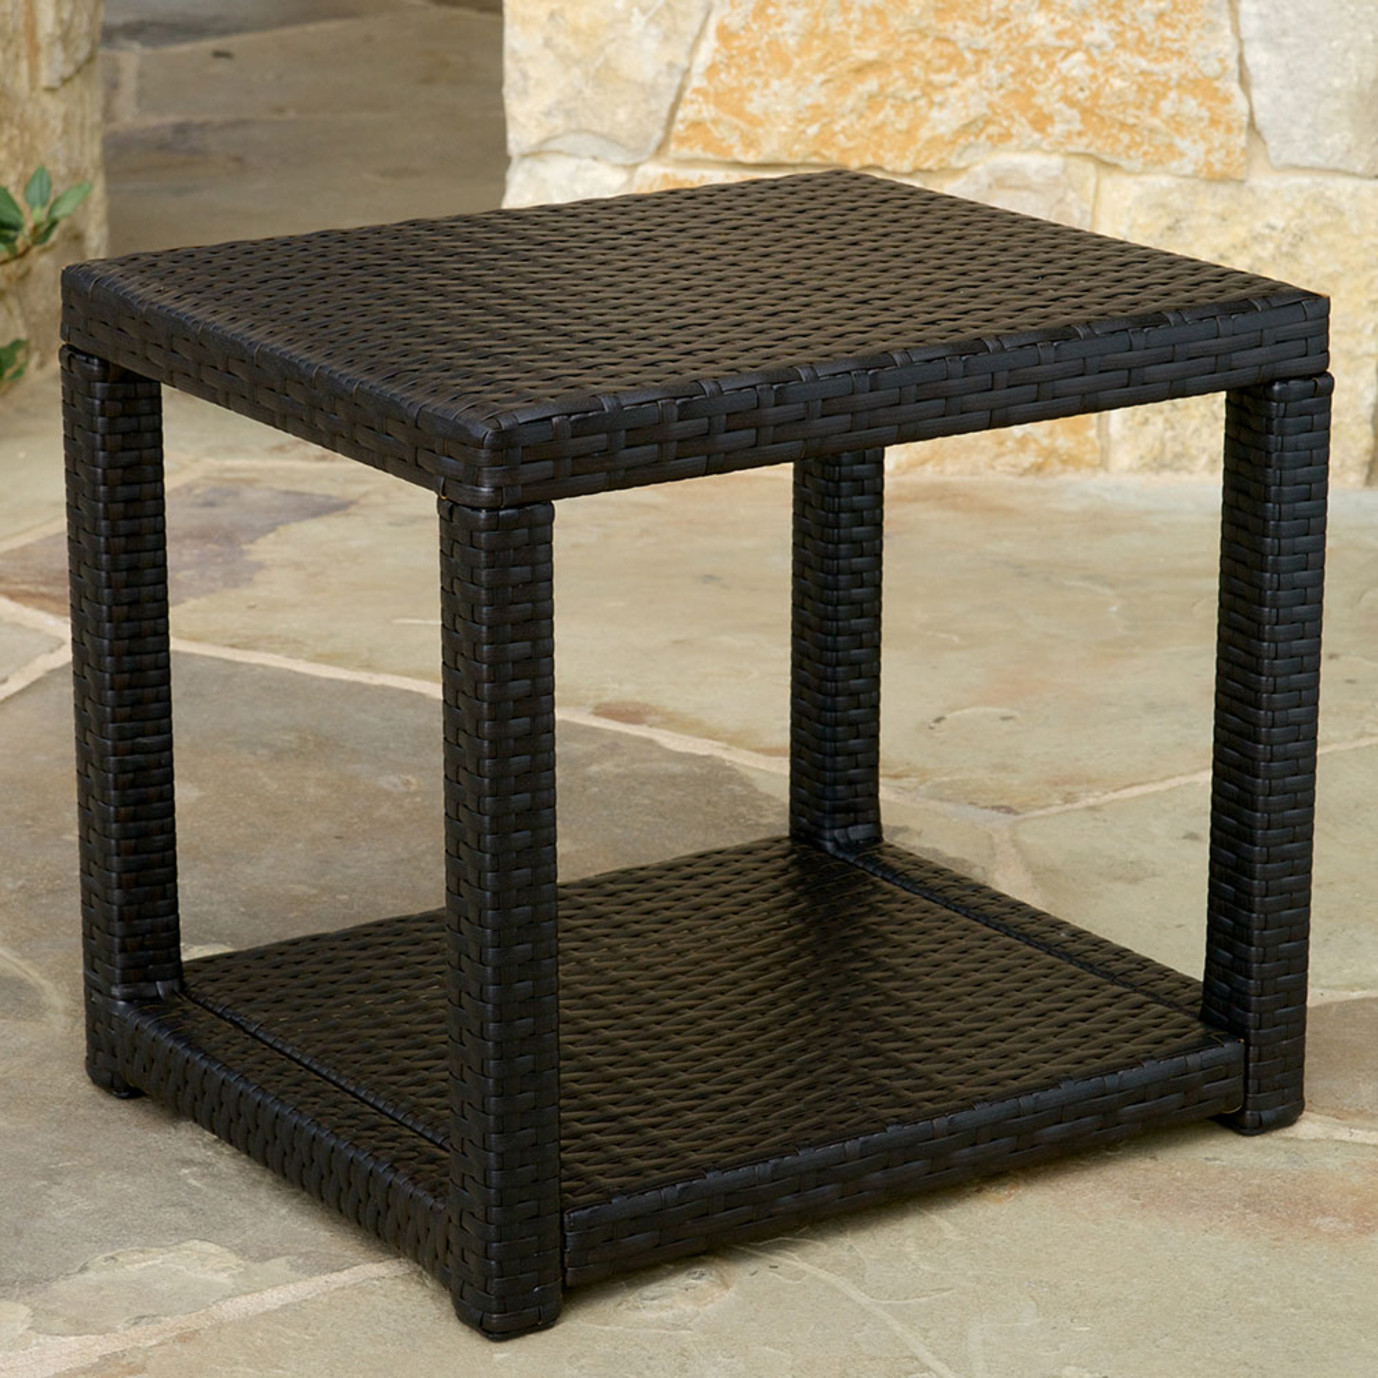 Portofino Comfort 22x18 Side Table in Espresso